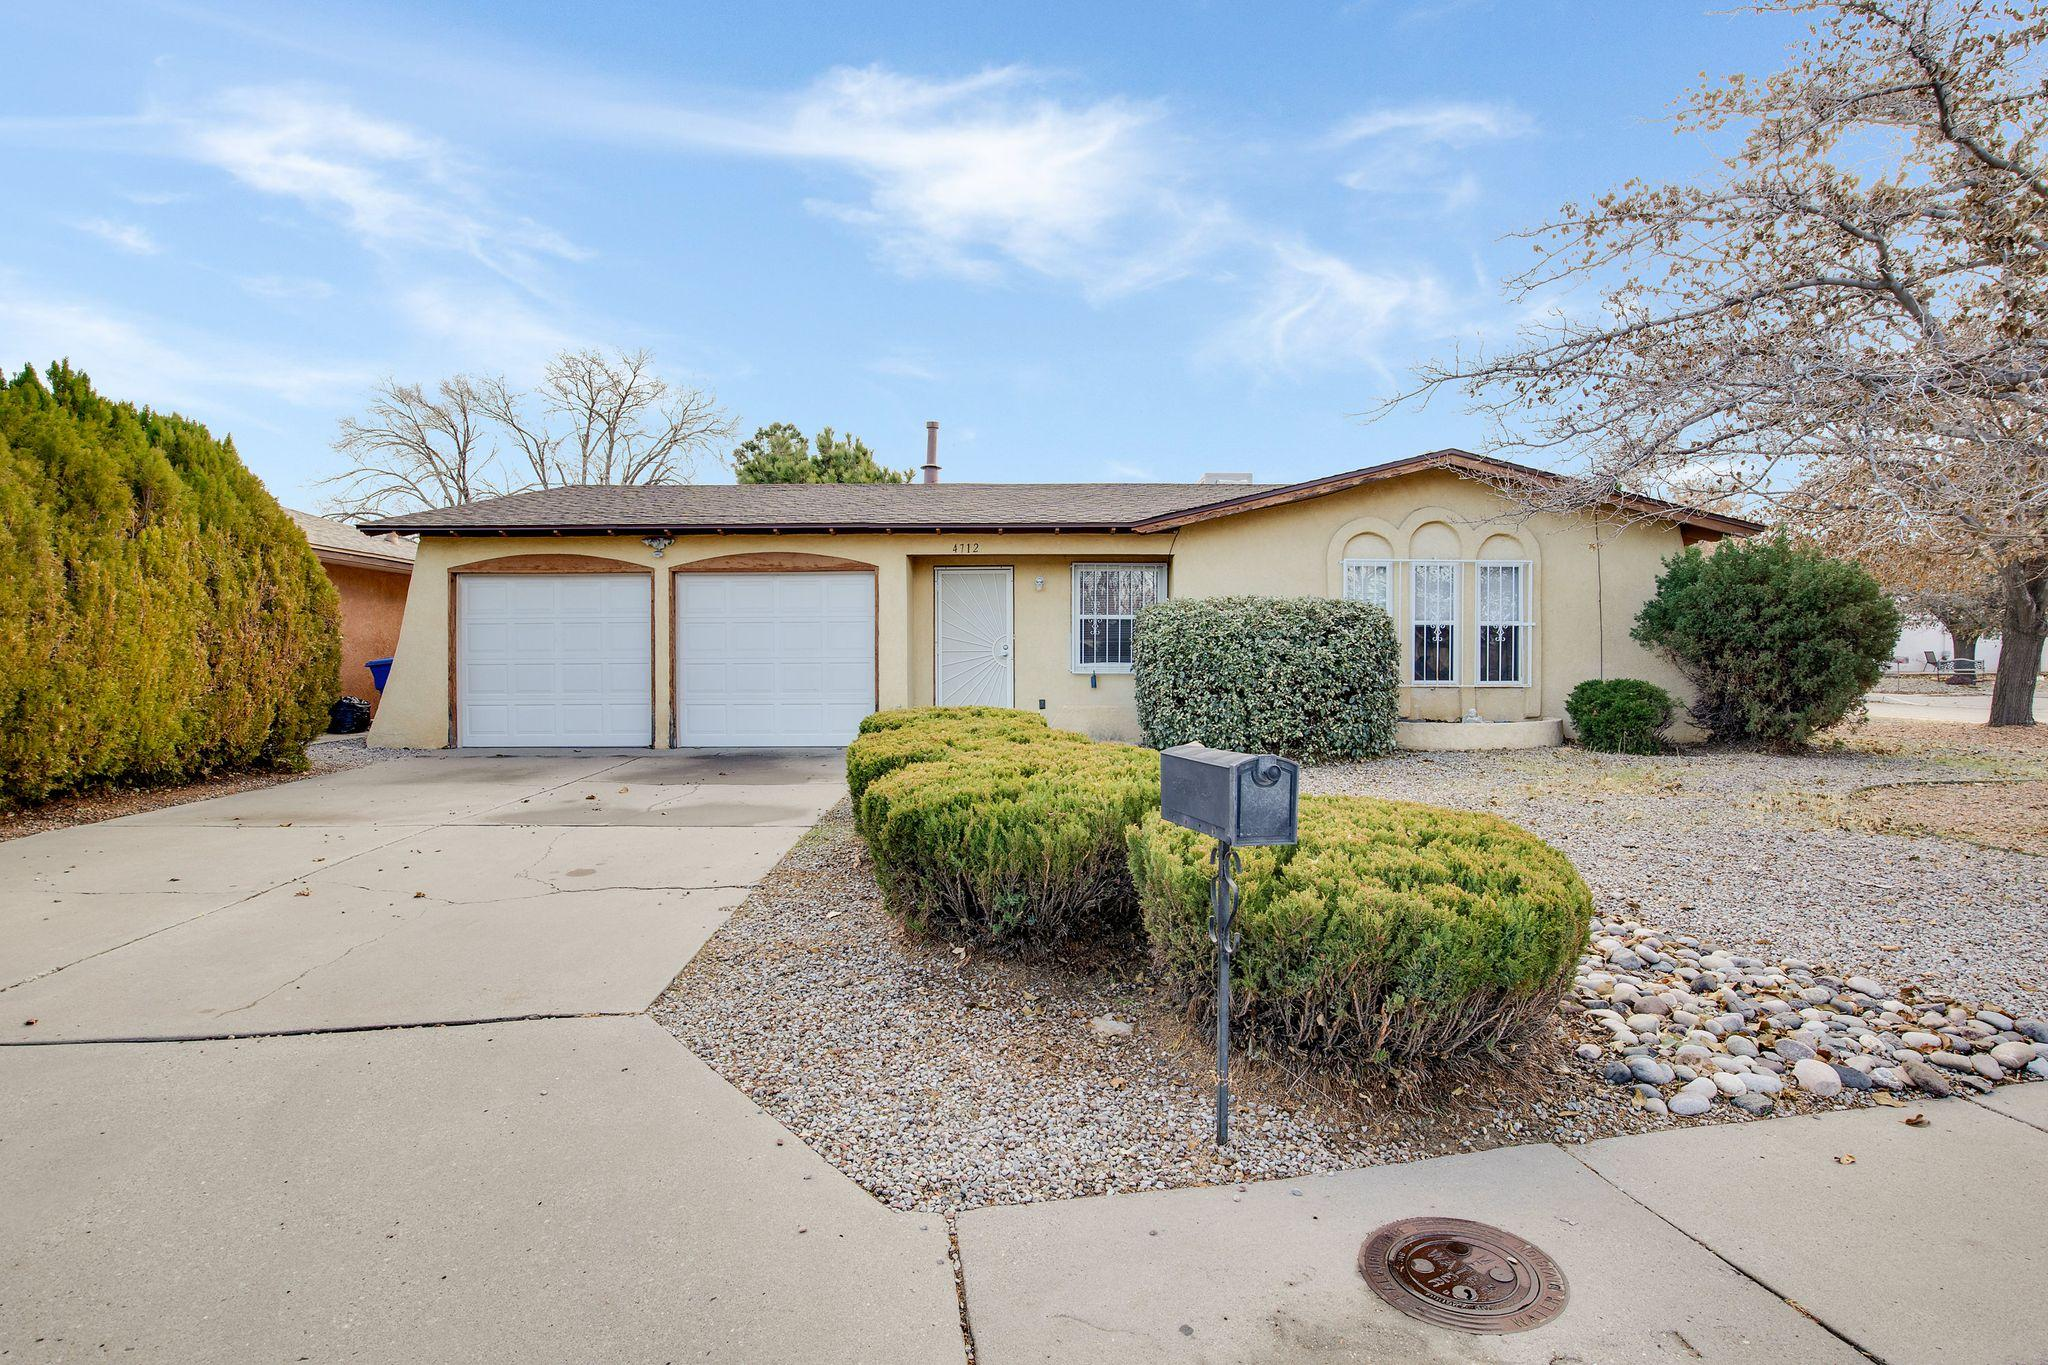 Charming home centrally located in the Del Norte district in NE Albuquerque!  If you're looking for convenience in the city, look no further as this 3 bedroom and 2 bathroom home has much to offer.      The larger corner lot has backyard access that lends itself well for your creative ideas.  The home is ready to be enjoyed by its new homeowner!  Don't delay, view today!